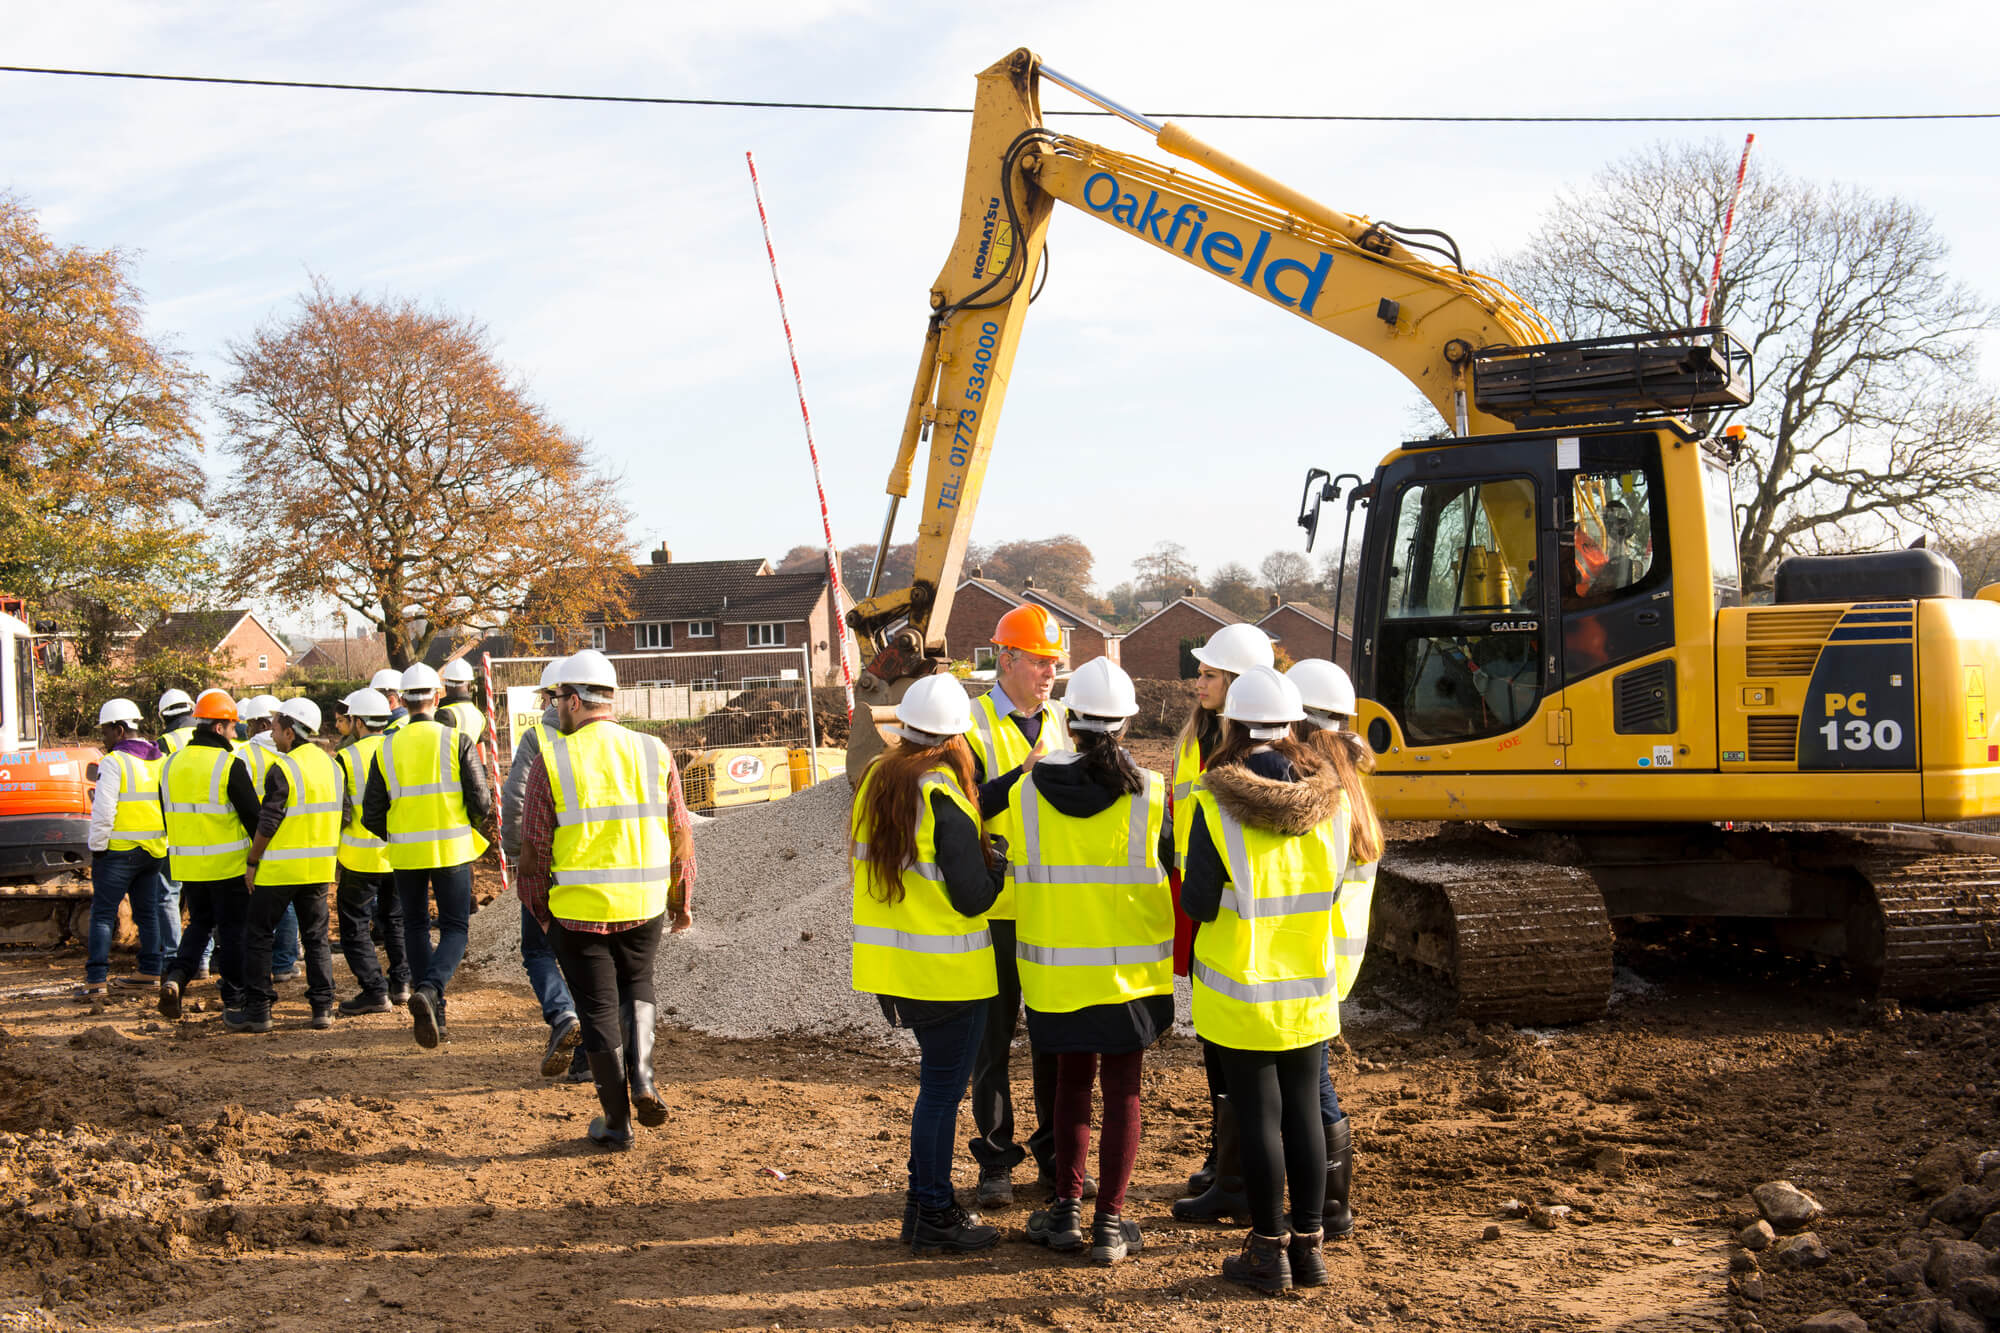 A group of students and lecturer on a construction site on a field trip